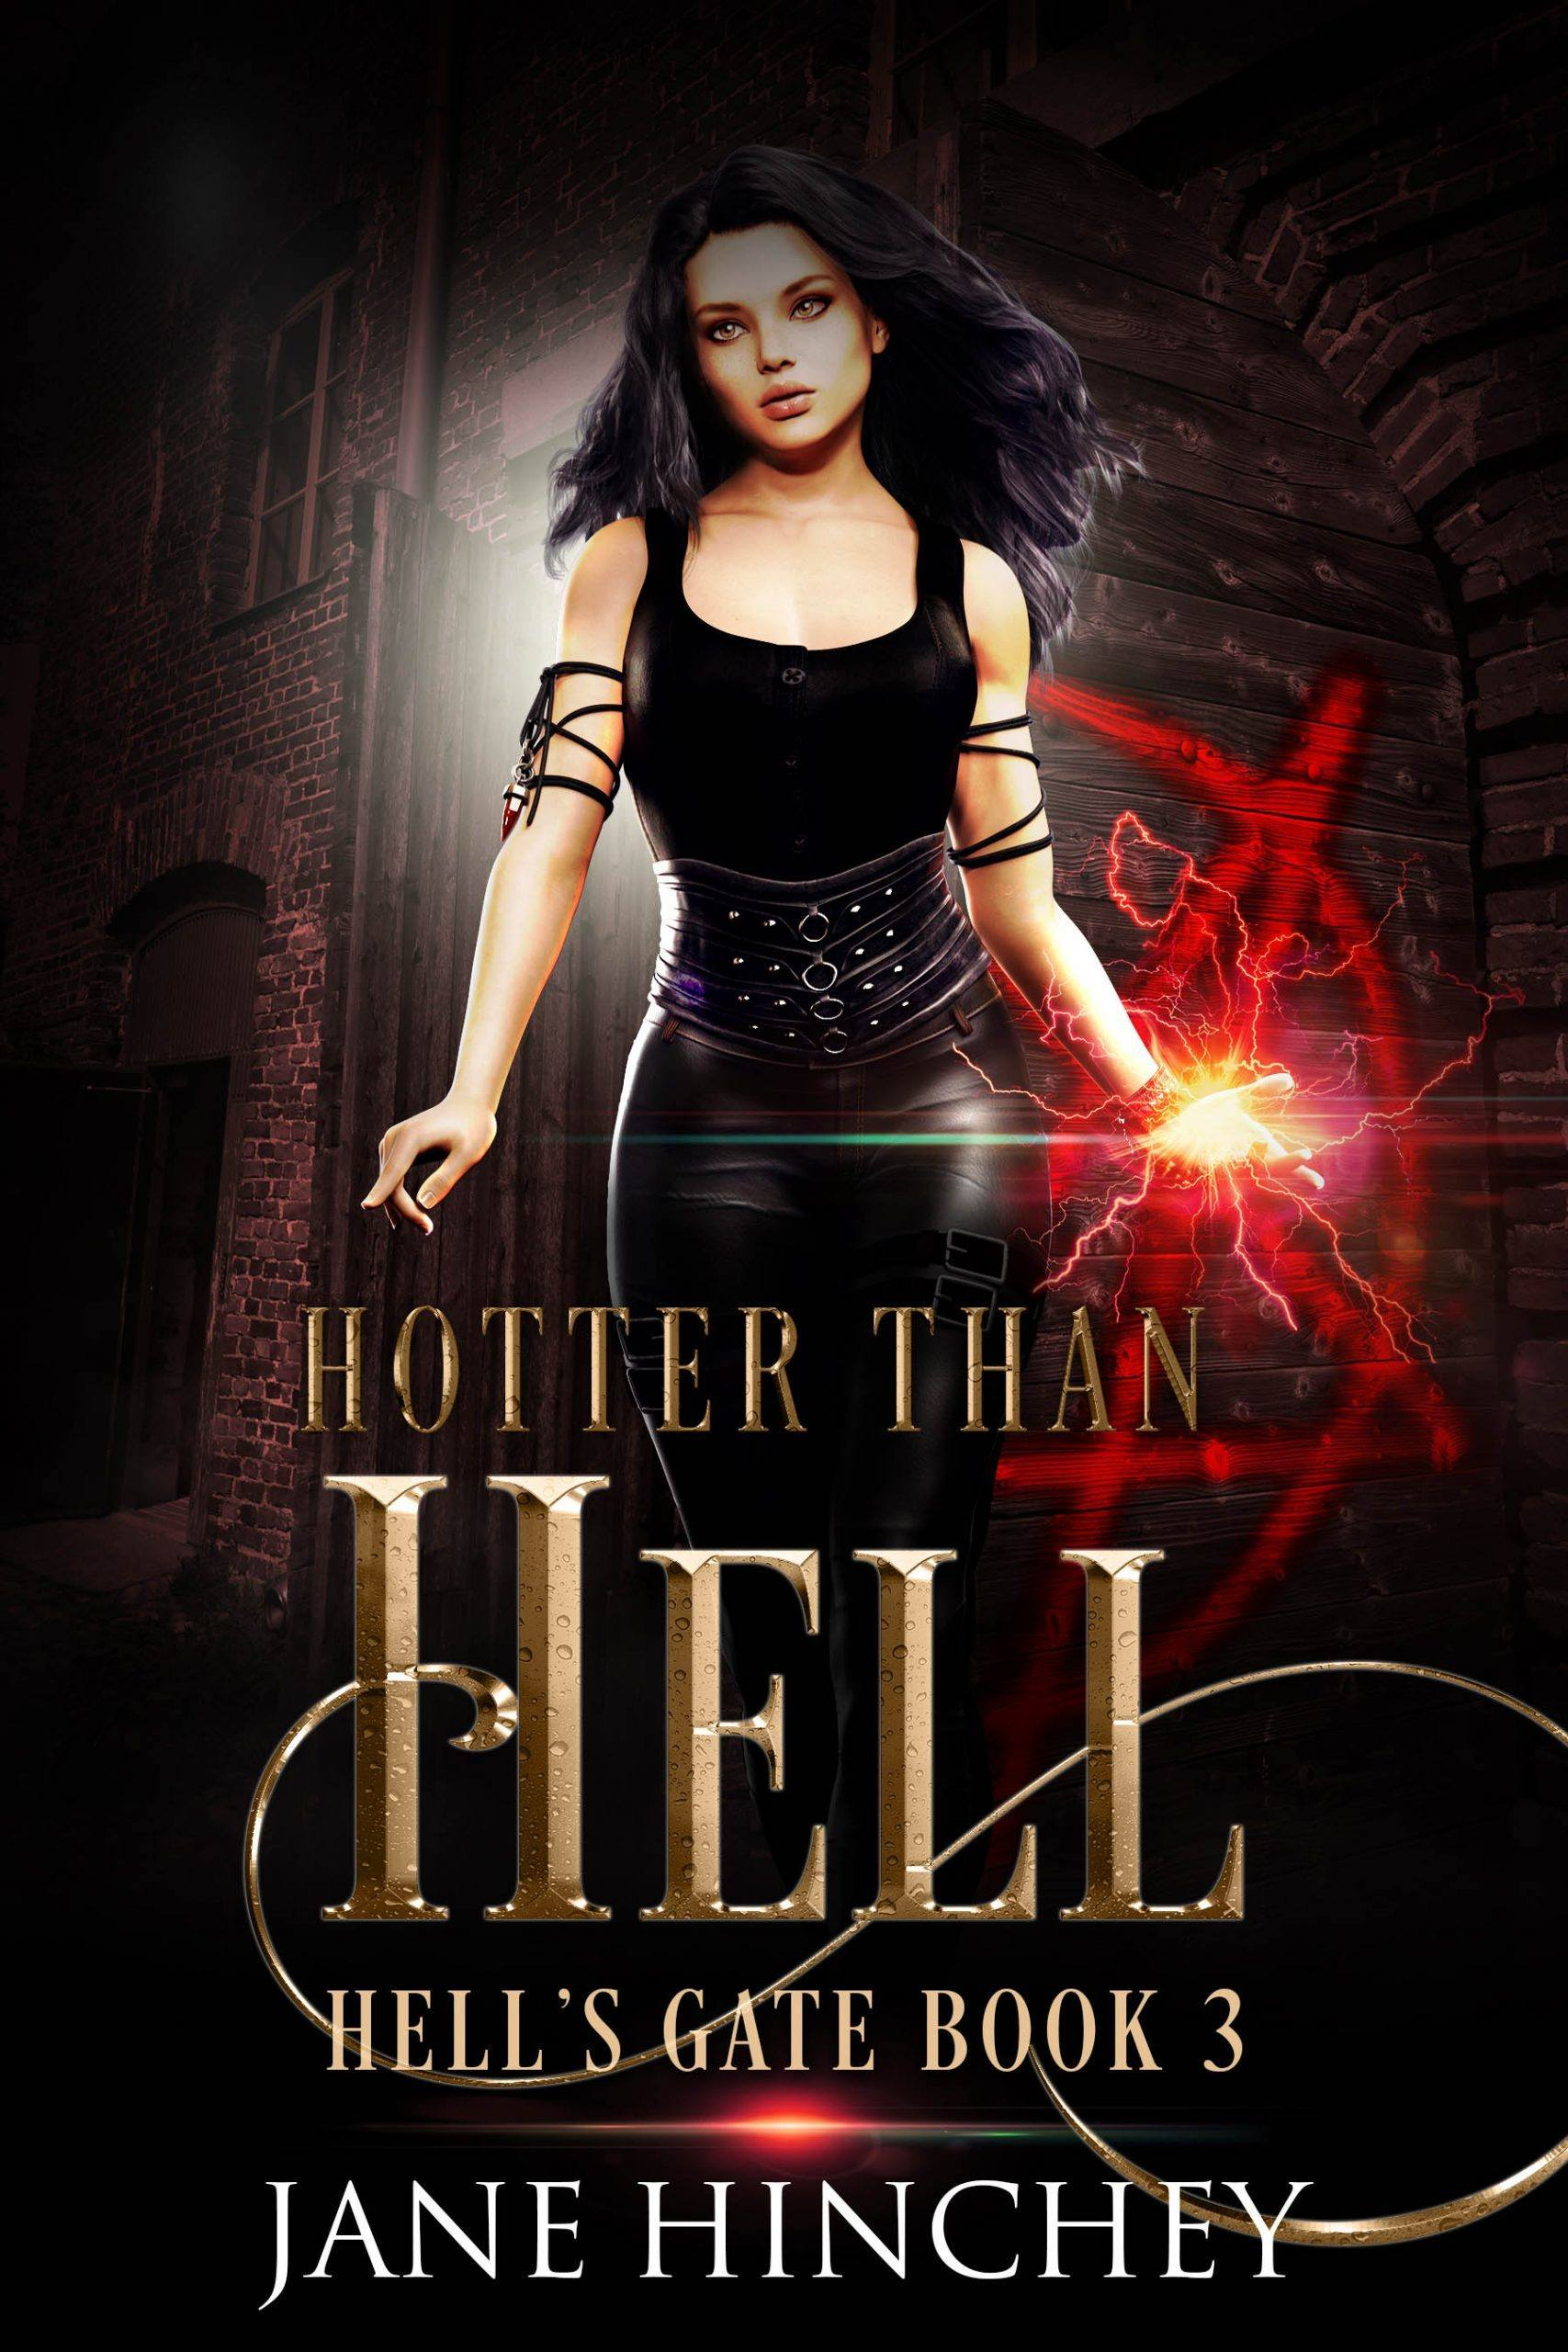 Book three in the Hell's Gate Series by Jane Hinchey